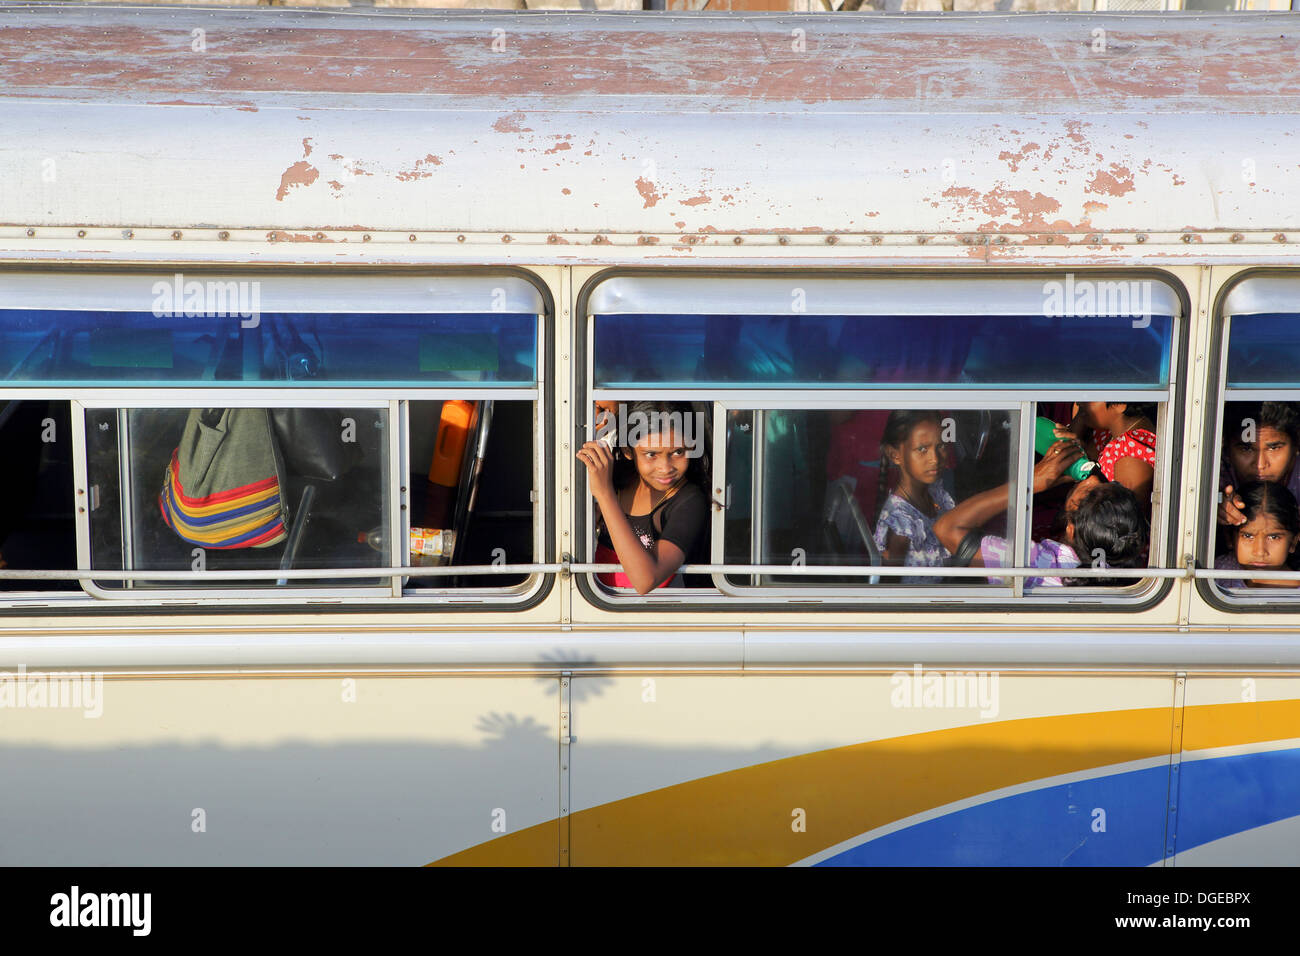 Children looking out window of bus - Stock Image